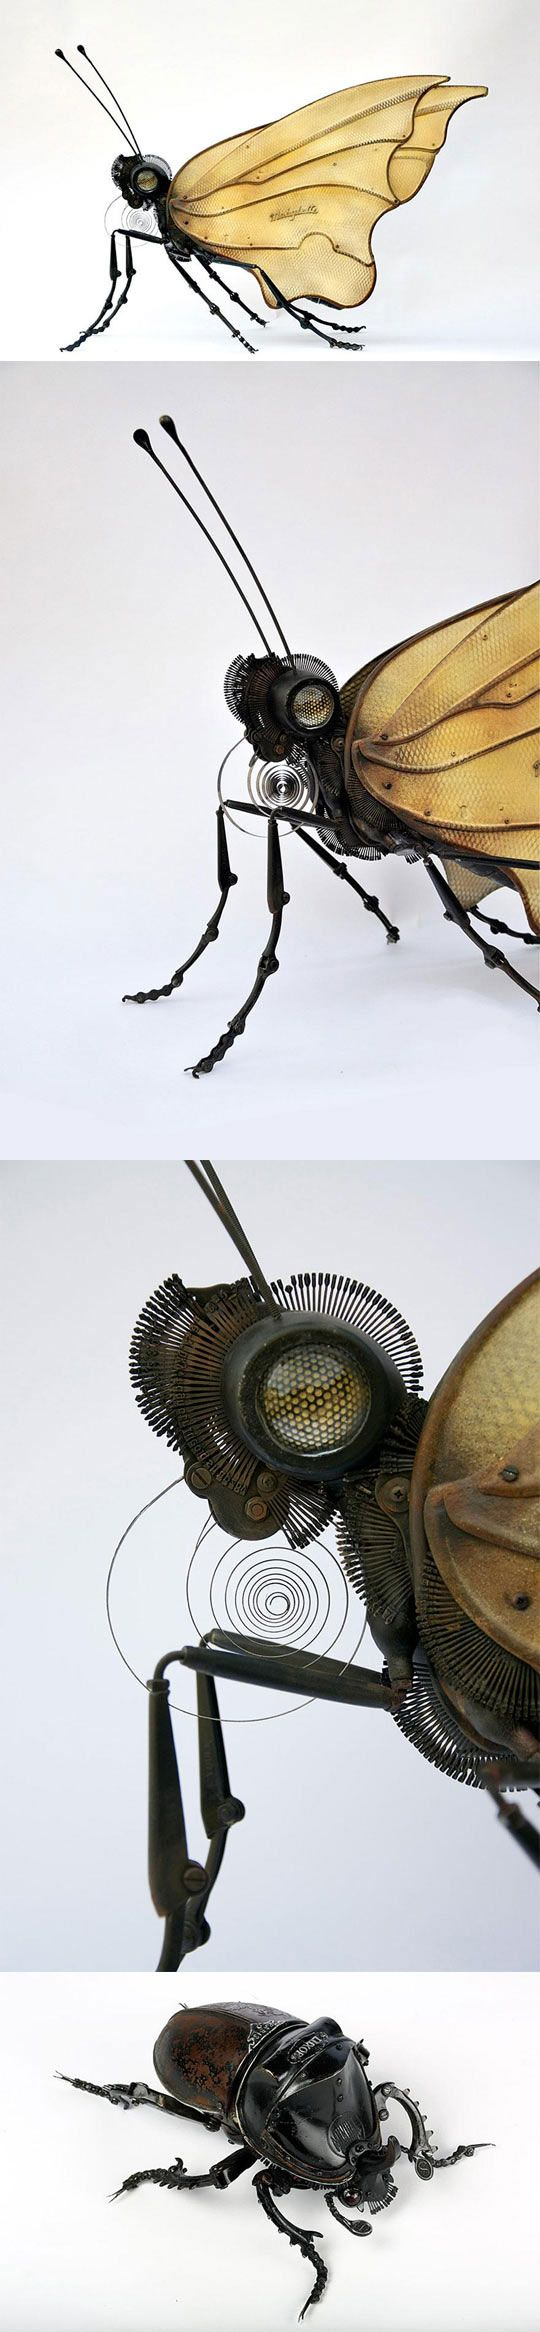 Best Steampunk Mechanization And Metal Sculpture Images On - Salvaged scrap metal transformed to create graceful kinetic steampunk sculptures